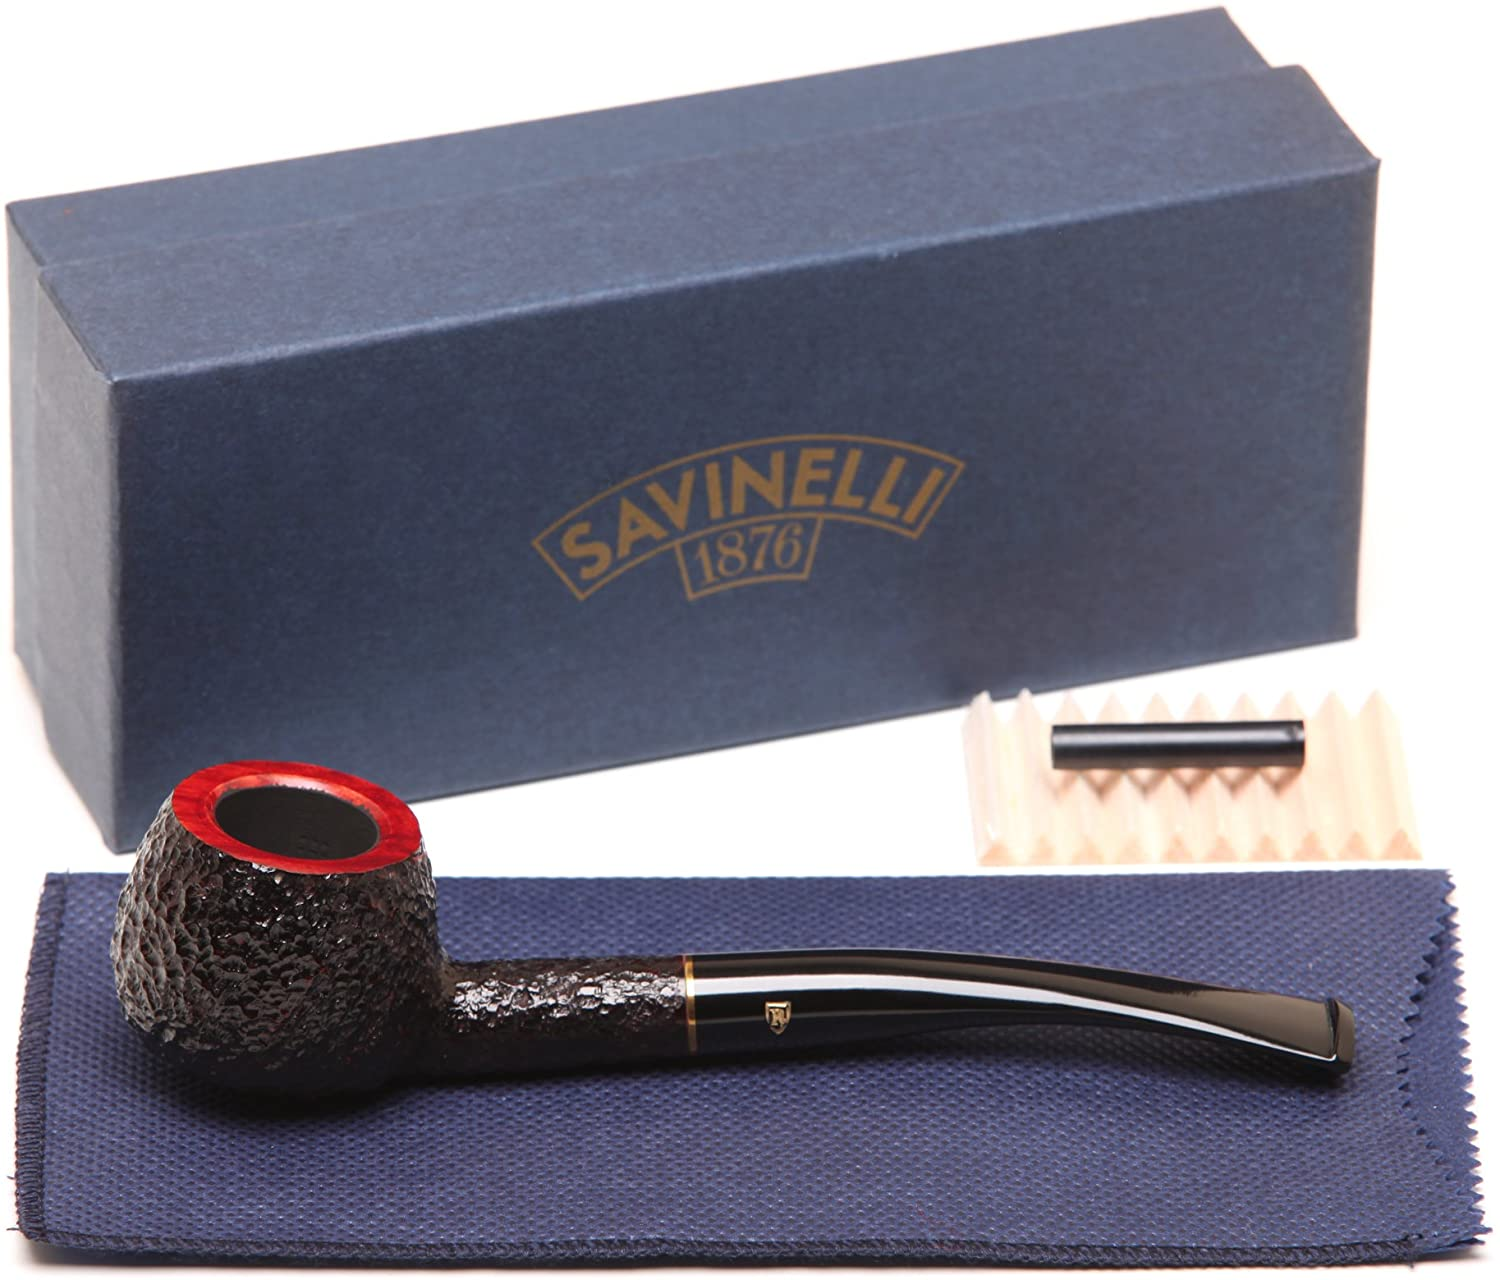 Savinelli Roma 313 Black Stem Tobacco Pipe